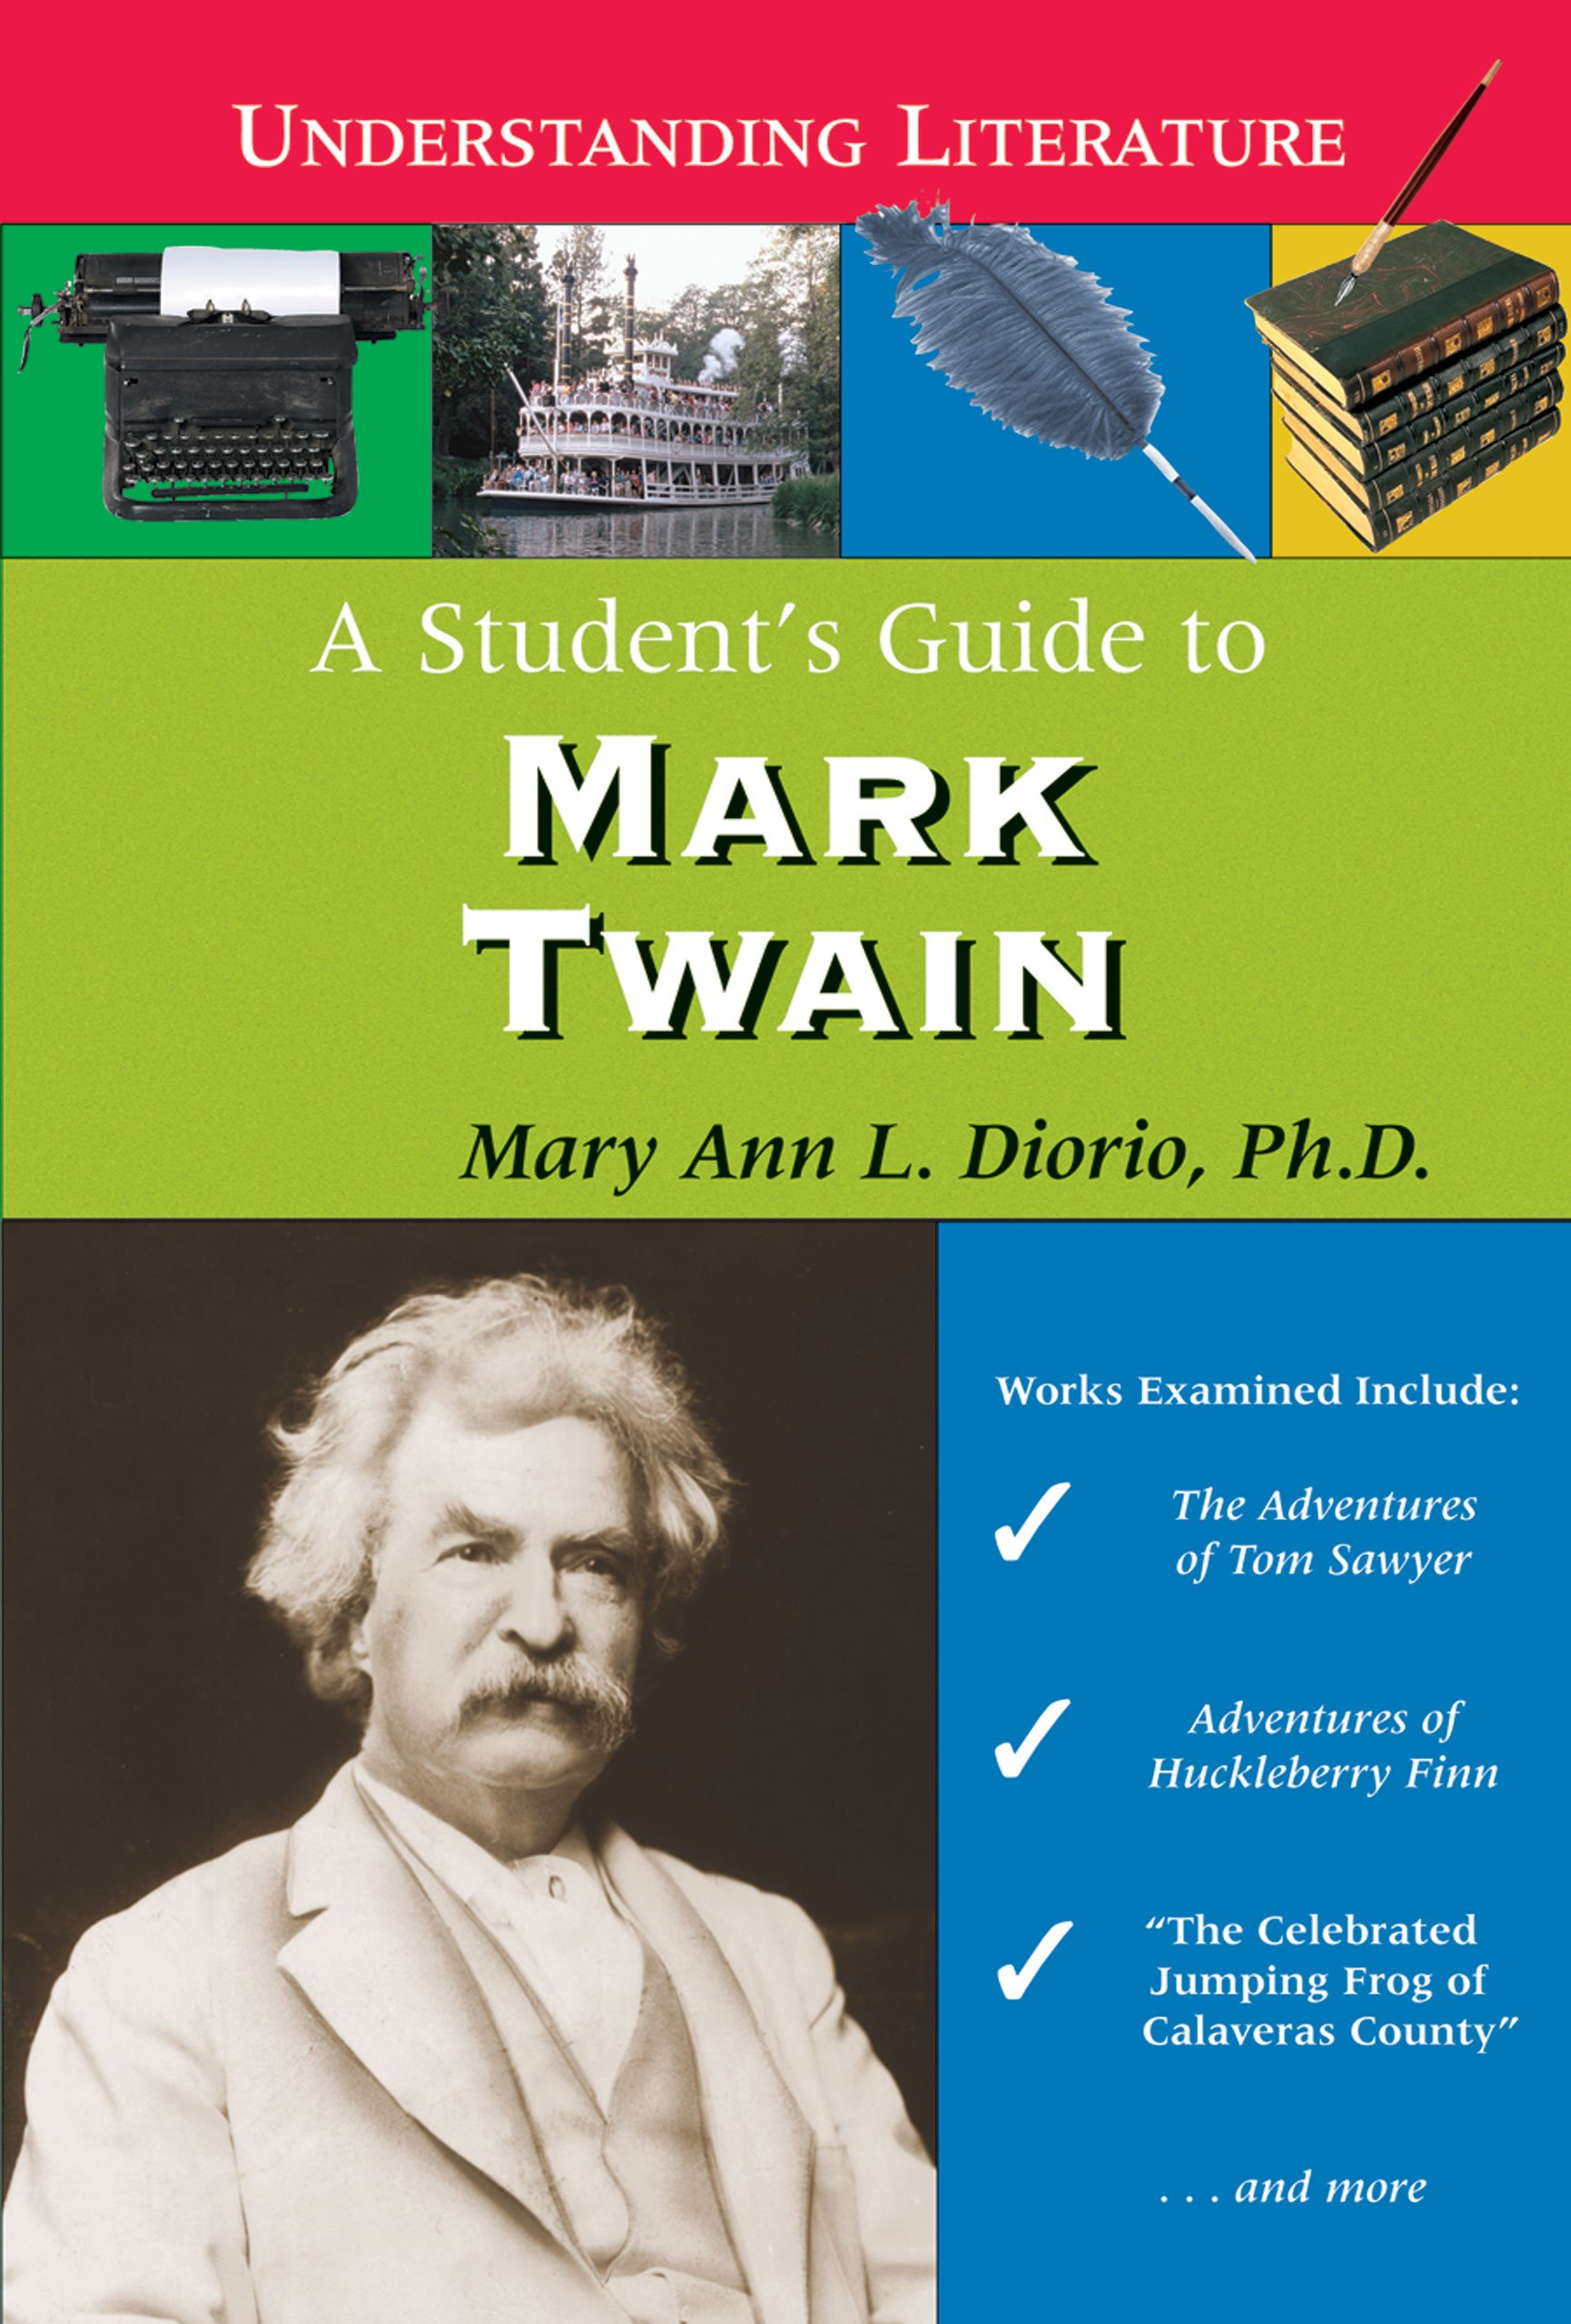 A Student's Guide to Mark Twain (Understanding Literature) ebook